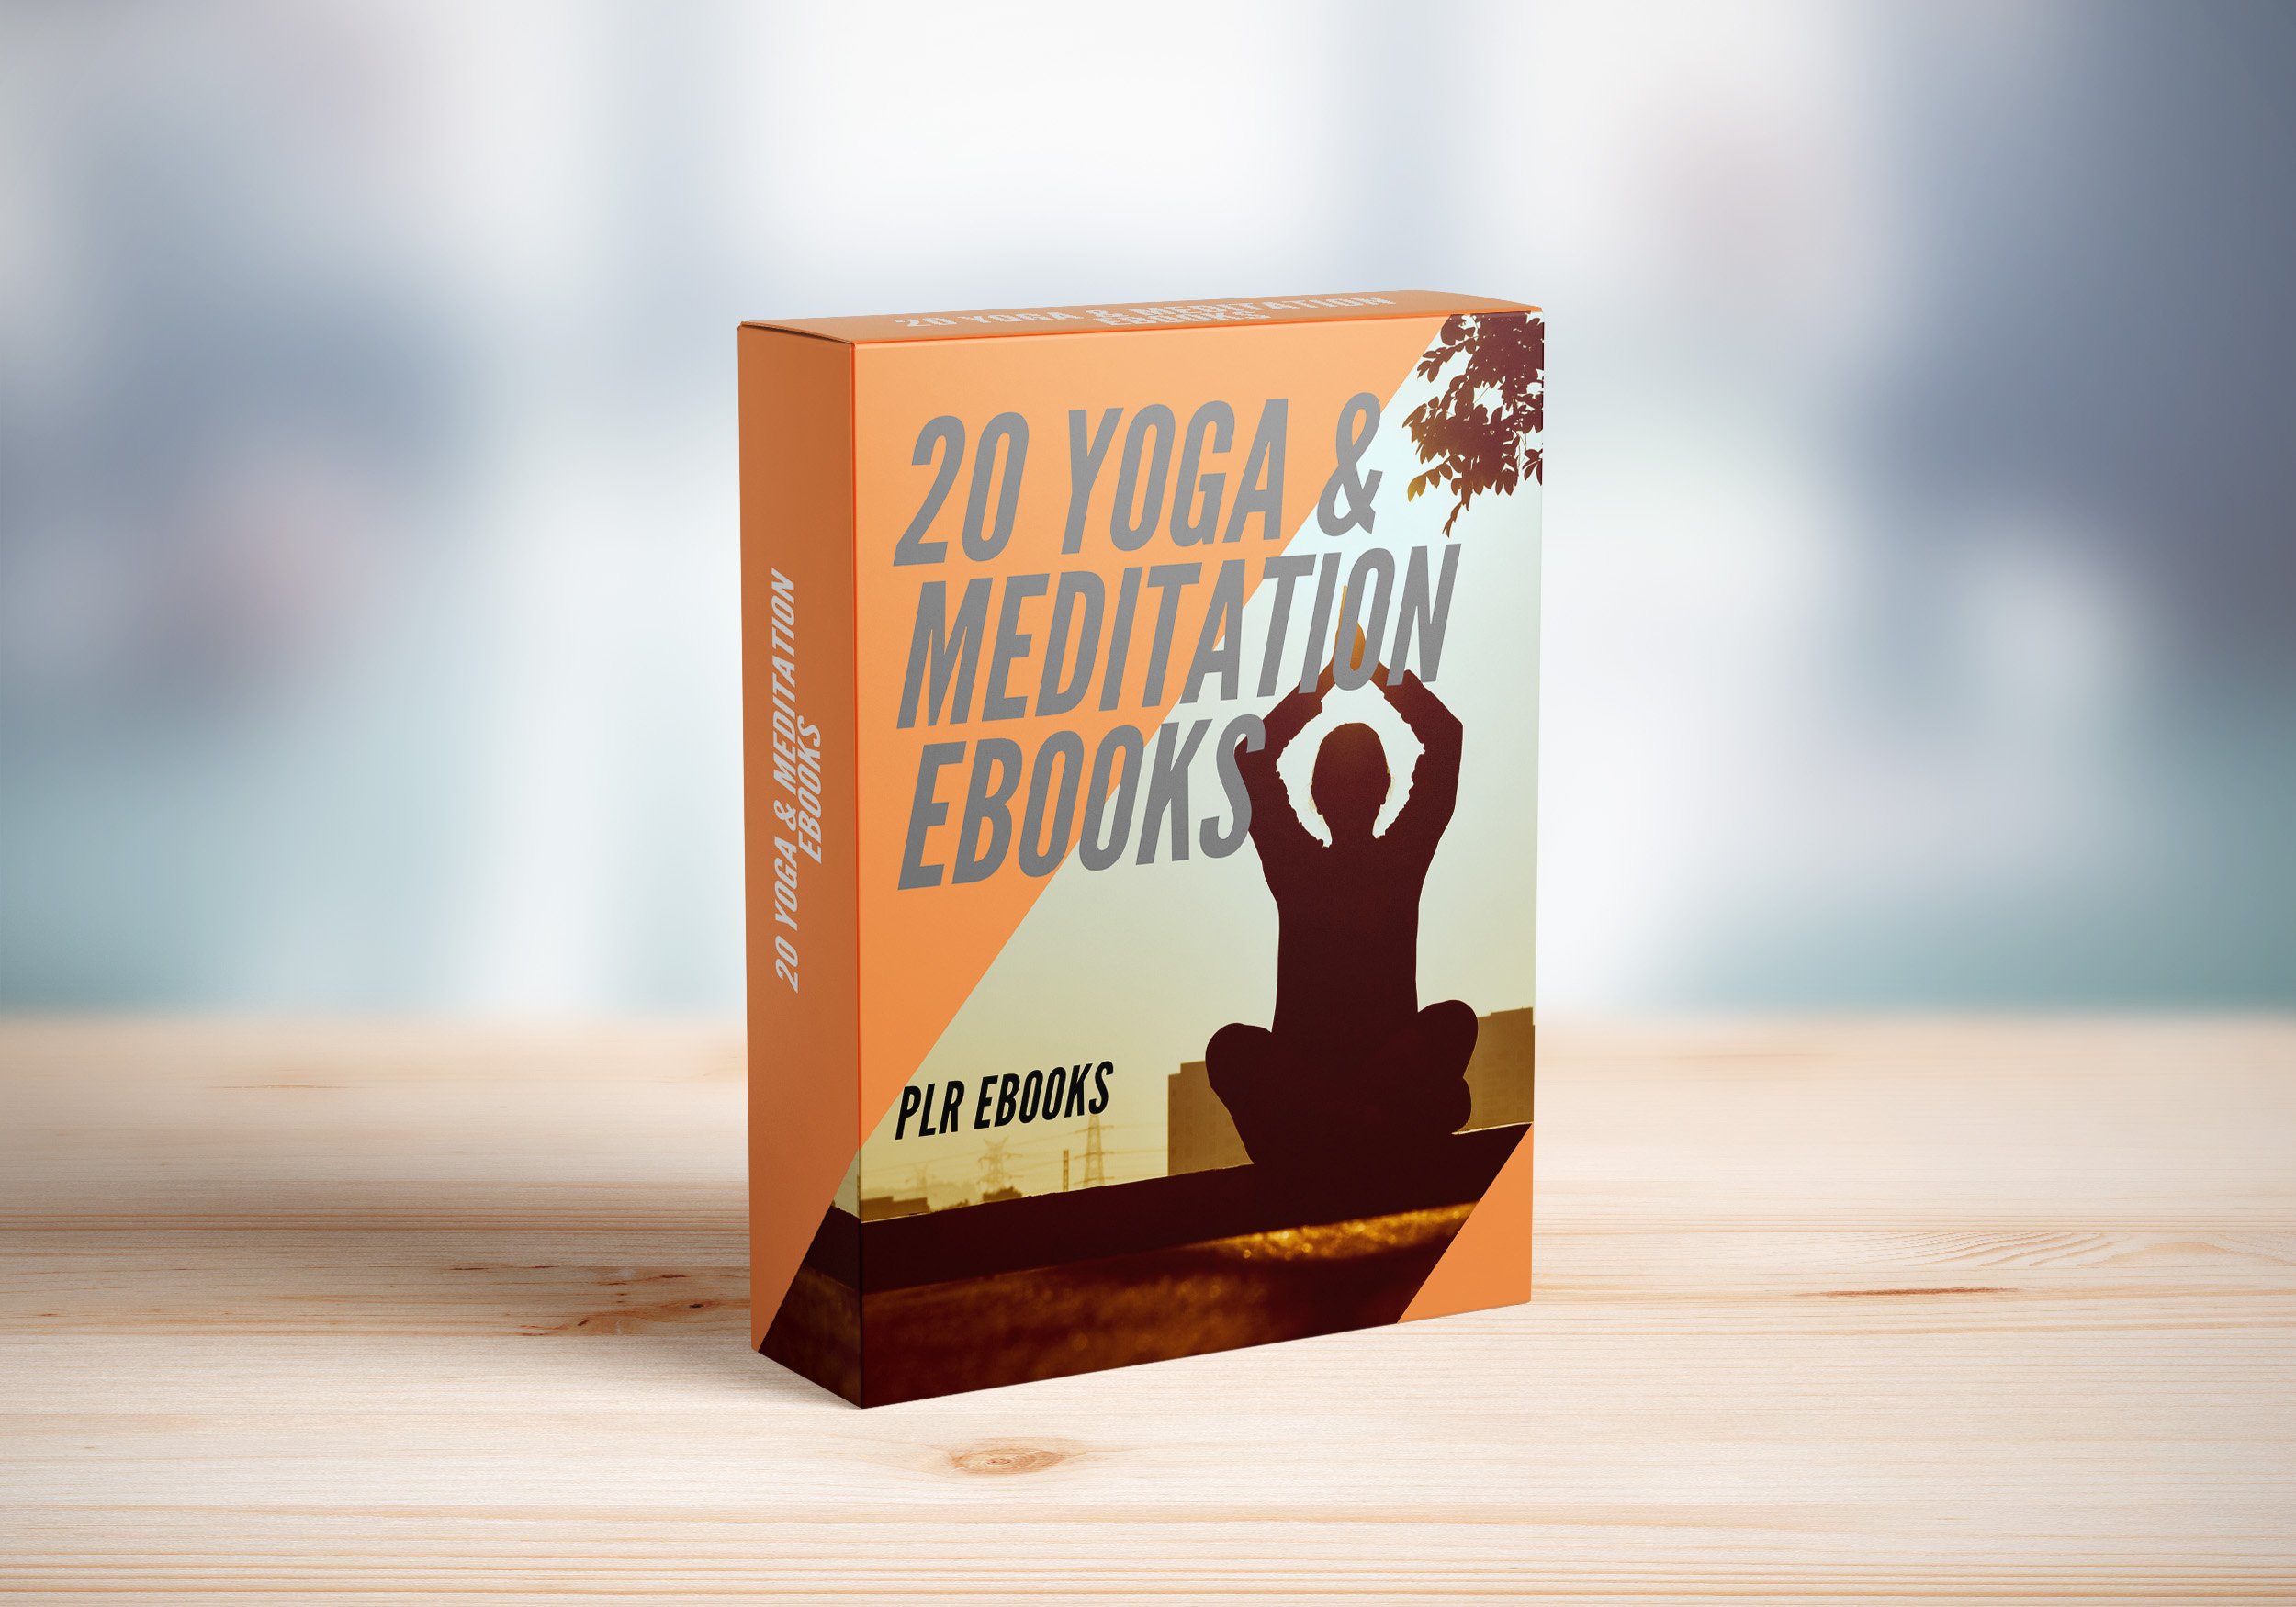 20 Yoga And Meditation Ebooks Bundle